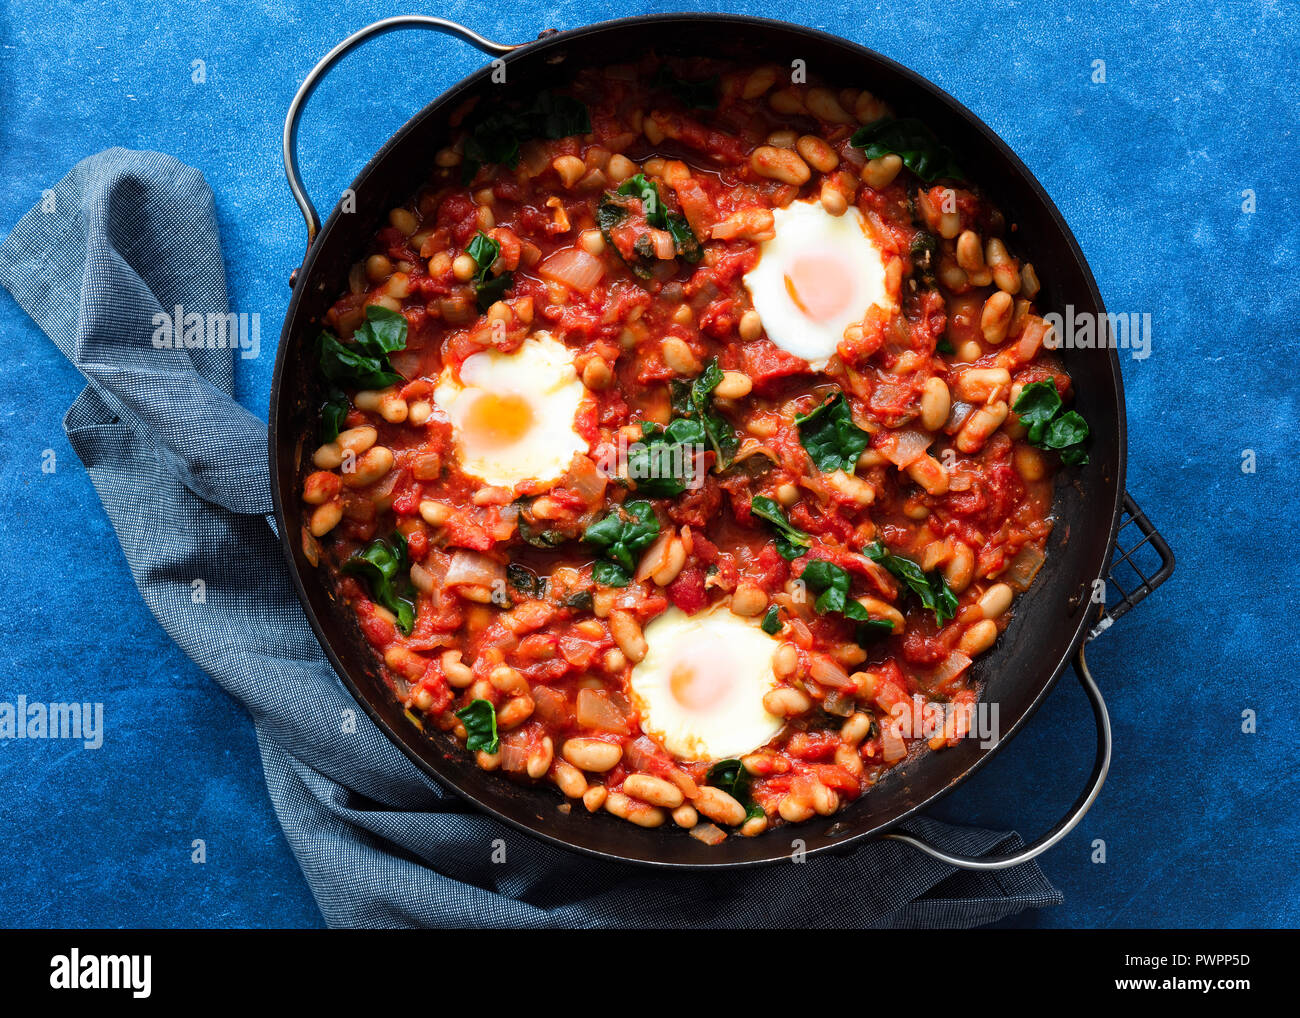 Shakshuka with silverbeet in a pan. - Stock Image